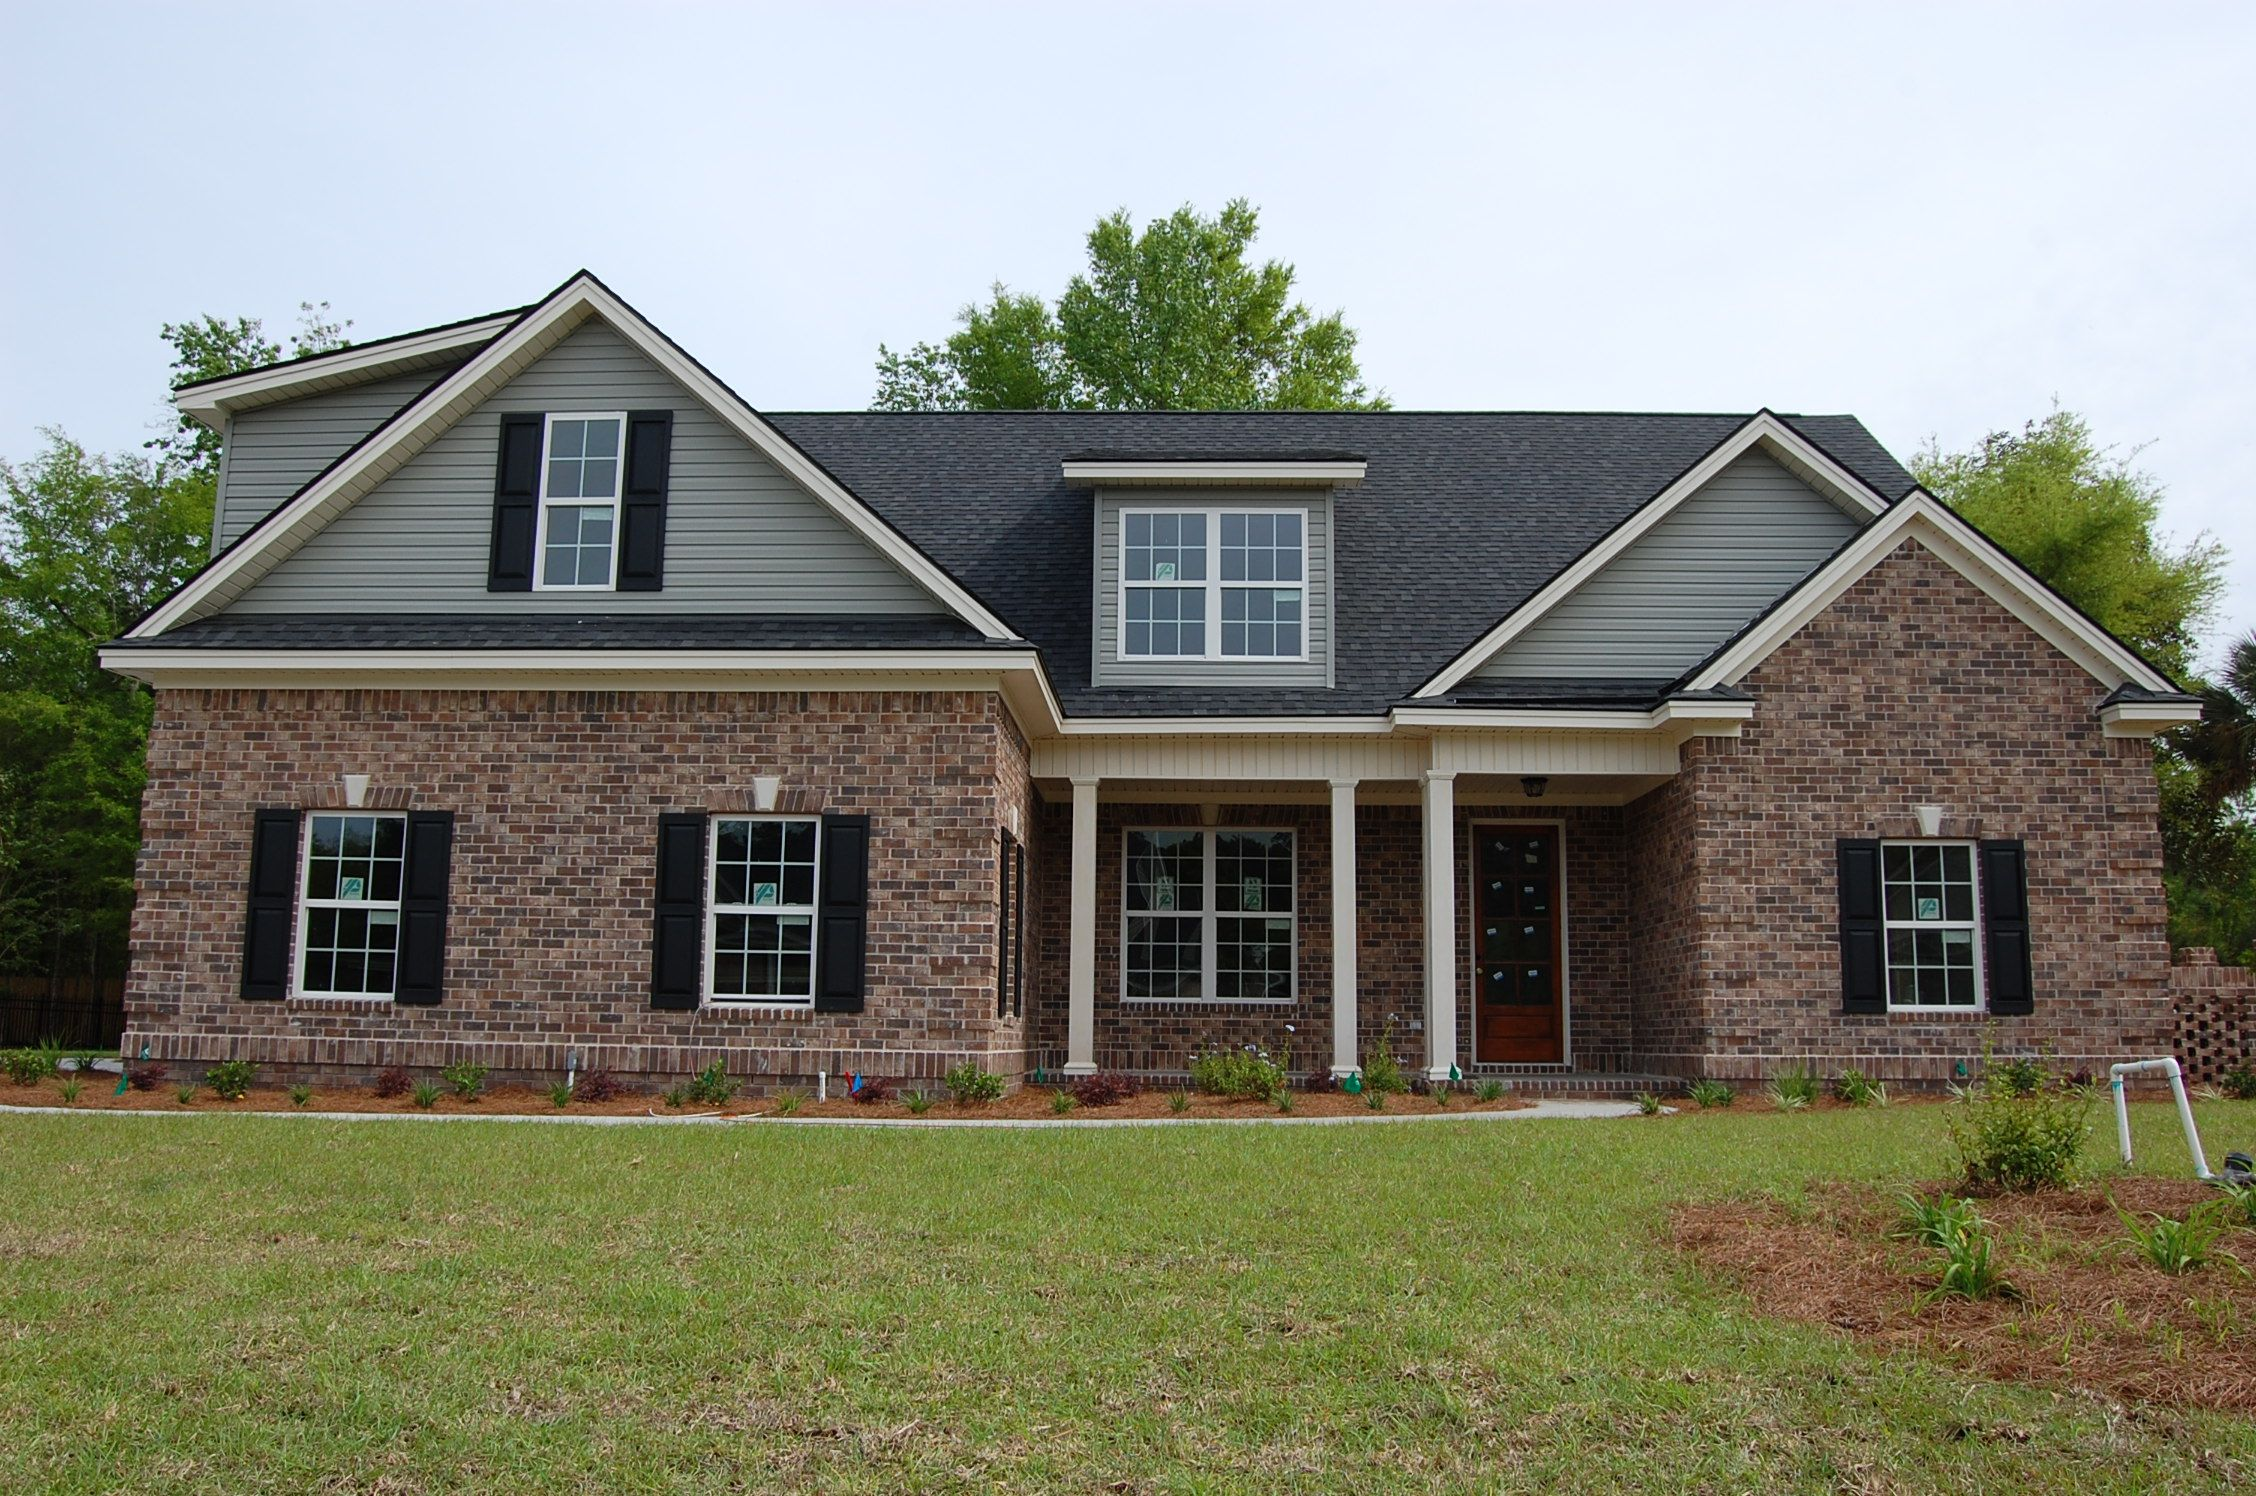 JCH Coastal Lifestyle Homes LLC   My properties   House styles, Home